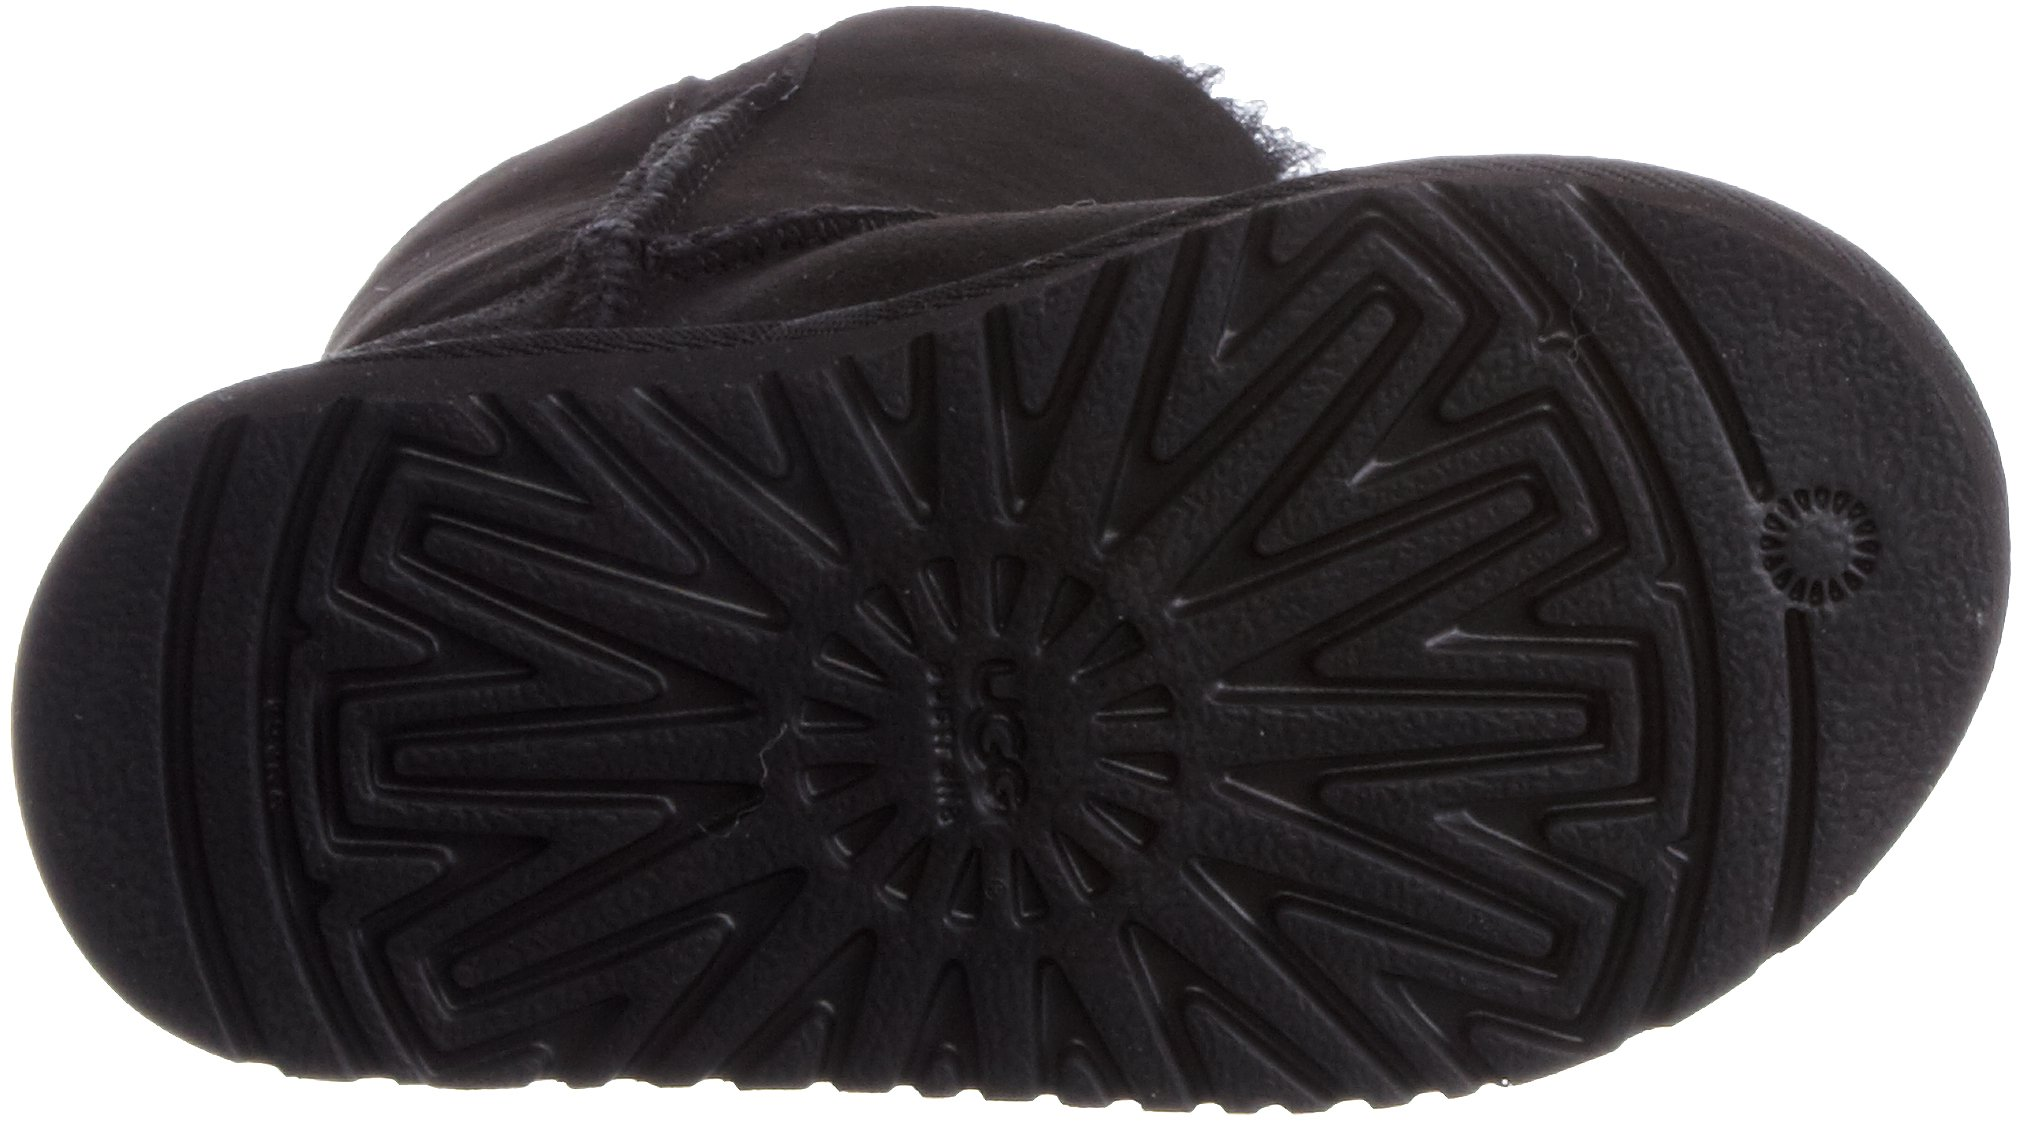 UGG Bailey Button Boot Kids, Black, 6 M US by UGG (Image #3)